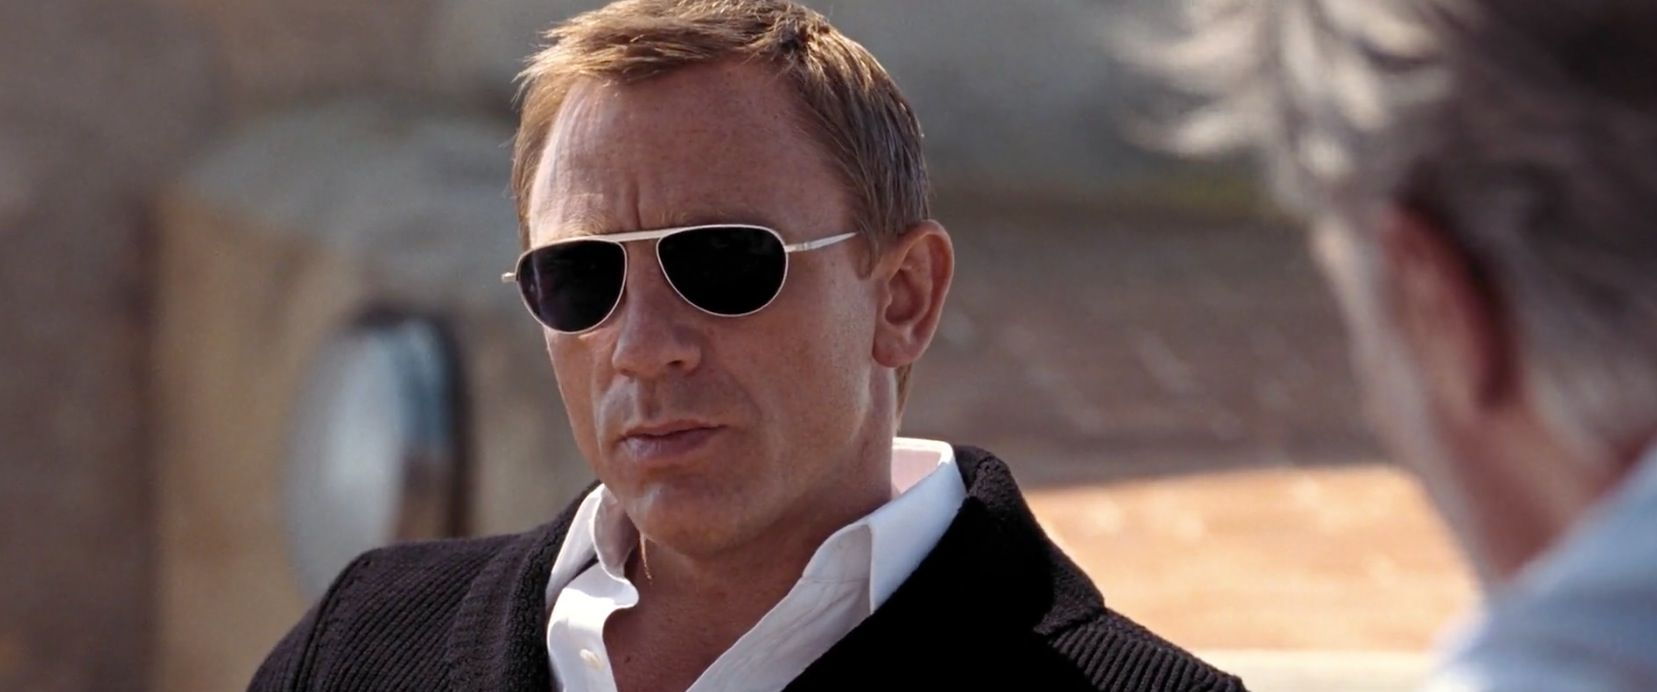 Tom Ford TF 108 sunglasses worn by Daniel Craig in QUANTUM ...